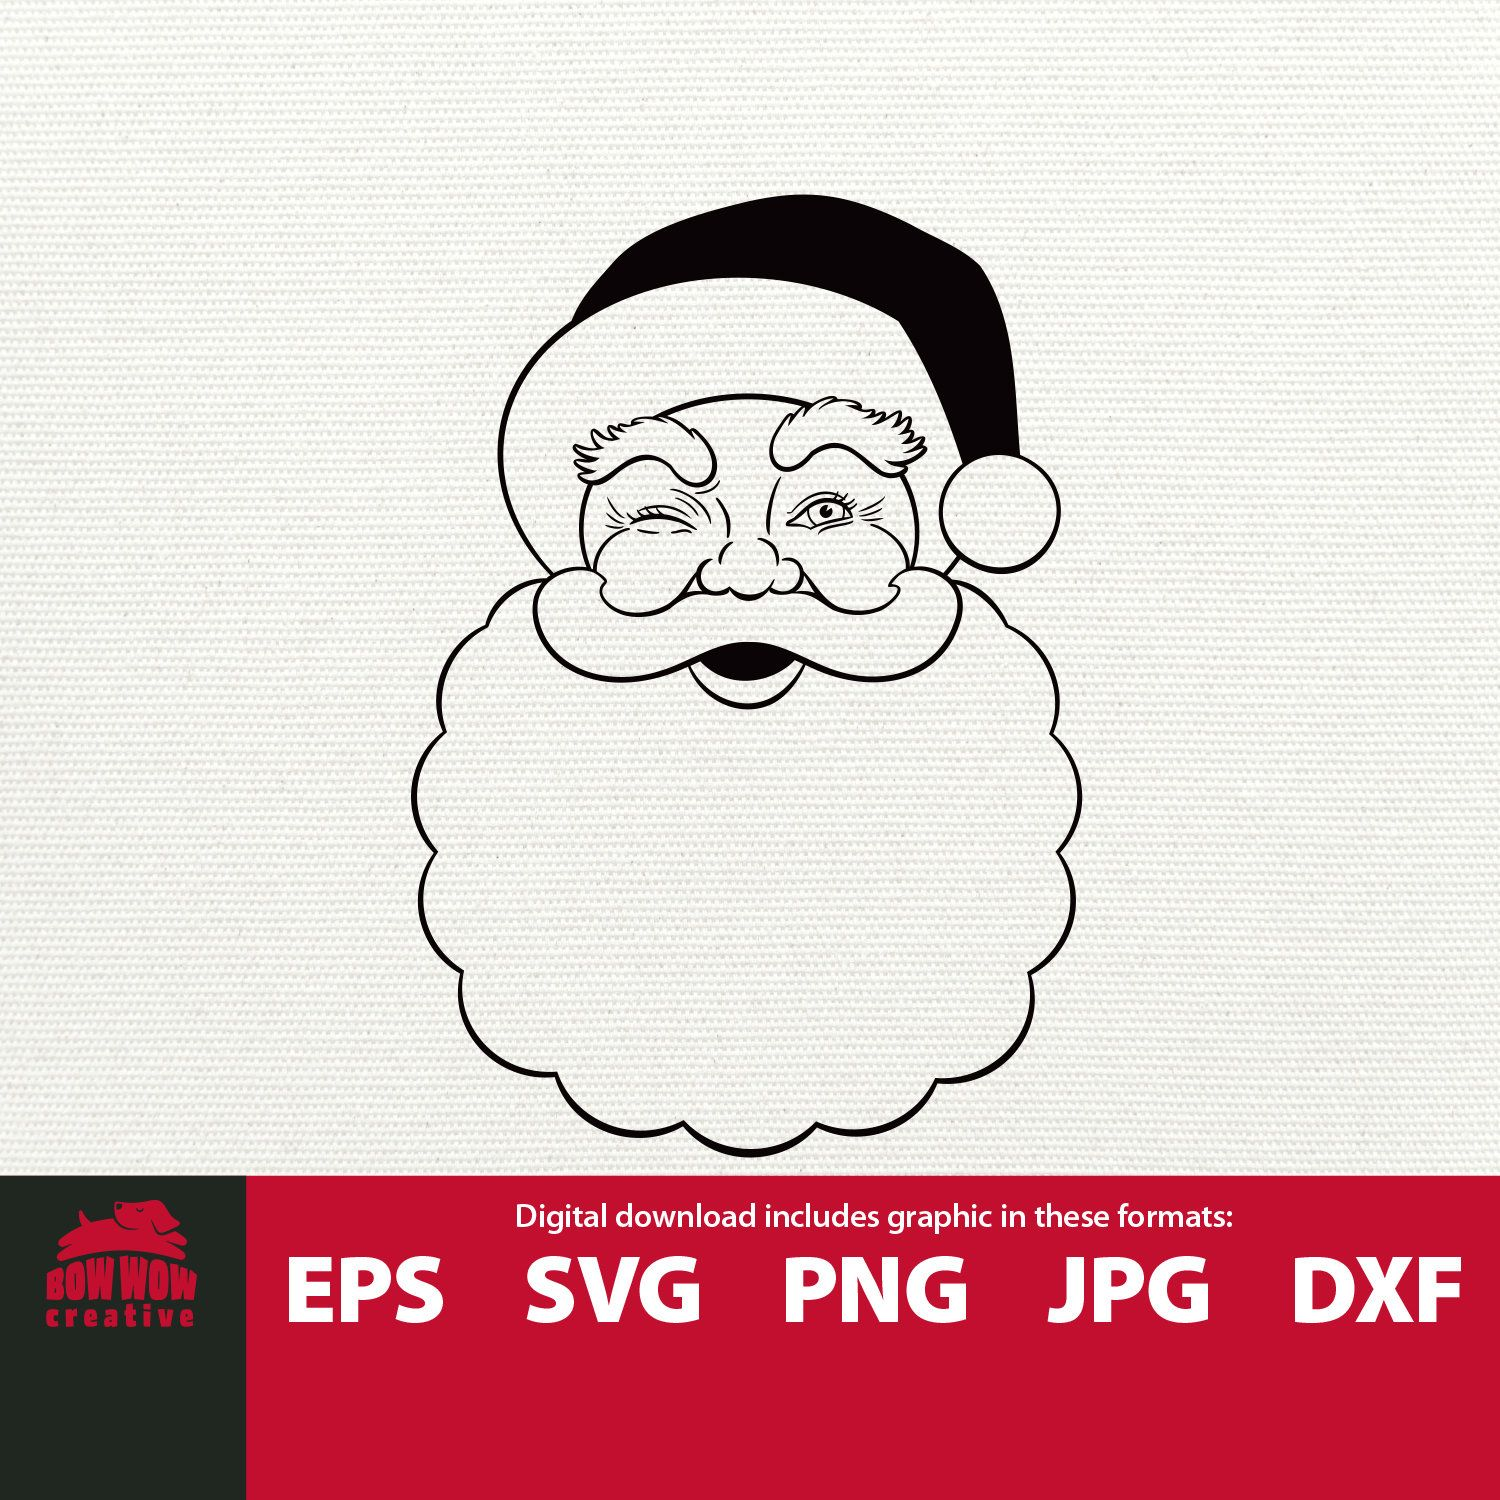 Vintage Santa Claus Svg Retro Santa Claus Svg Santa Svg Old Fashioned Santa Svg Christmas Svg Santa Face Svg Old Fashion Santa Claus Svg Eps Vintage Santa Claus Santa Face Vintage